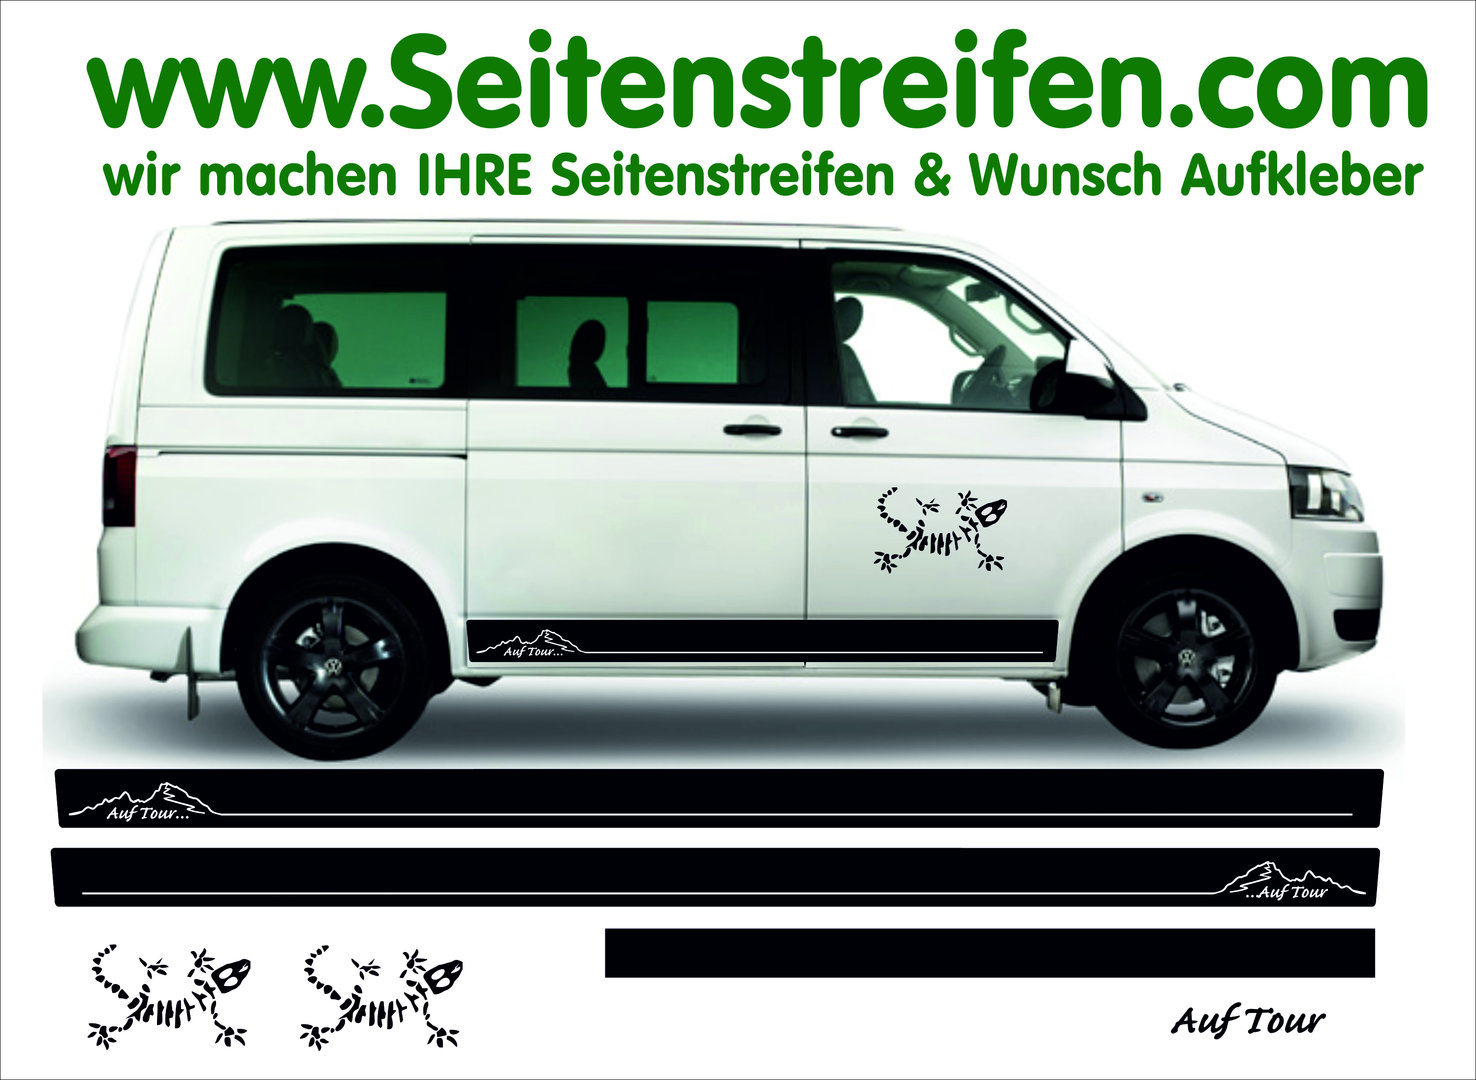 Vw bus t4 t5 on tour gekko side stripe sticker decal complete set edition look